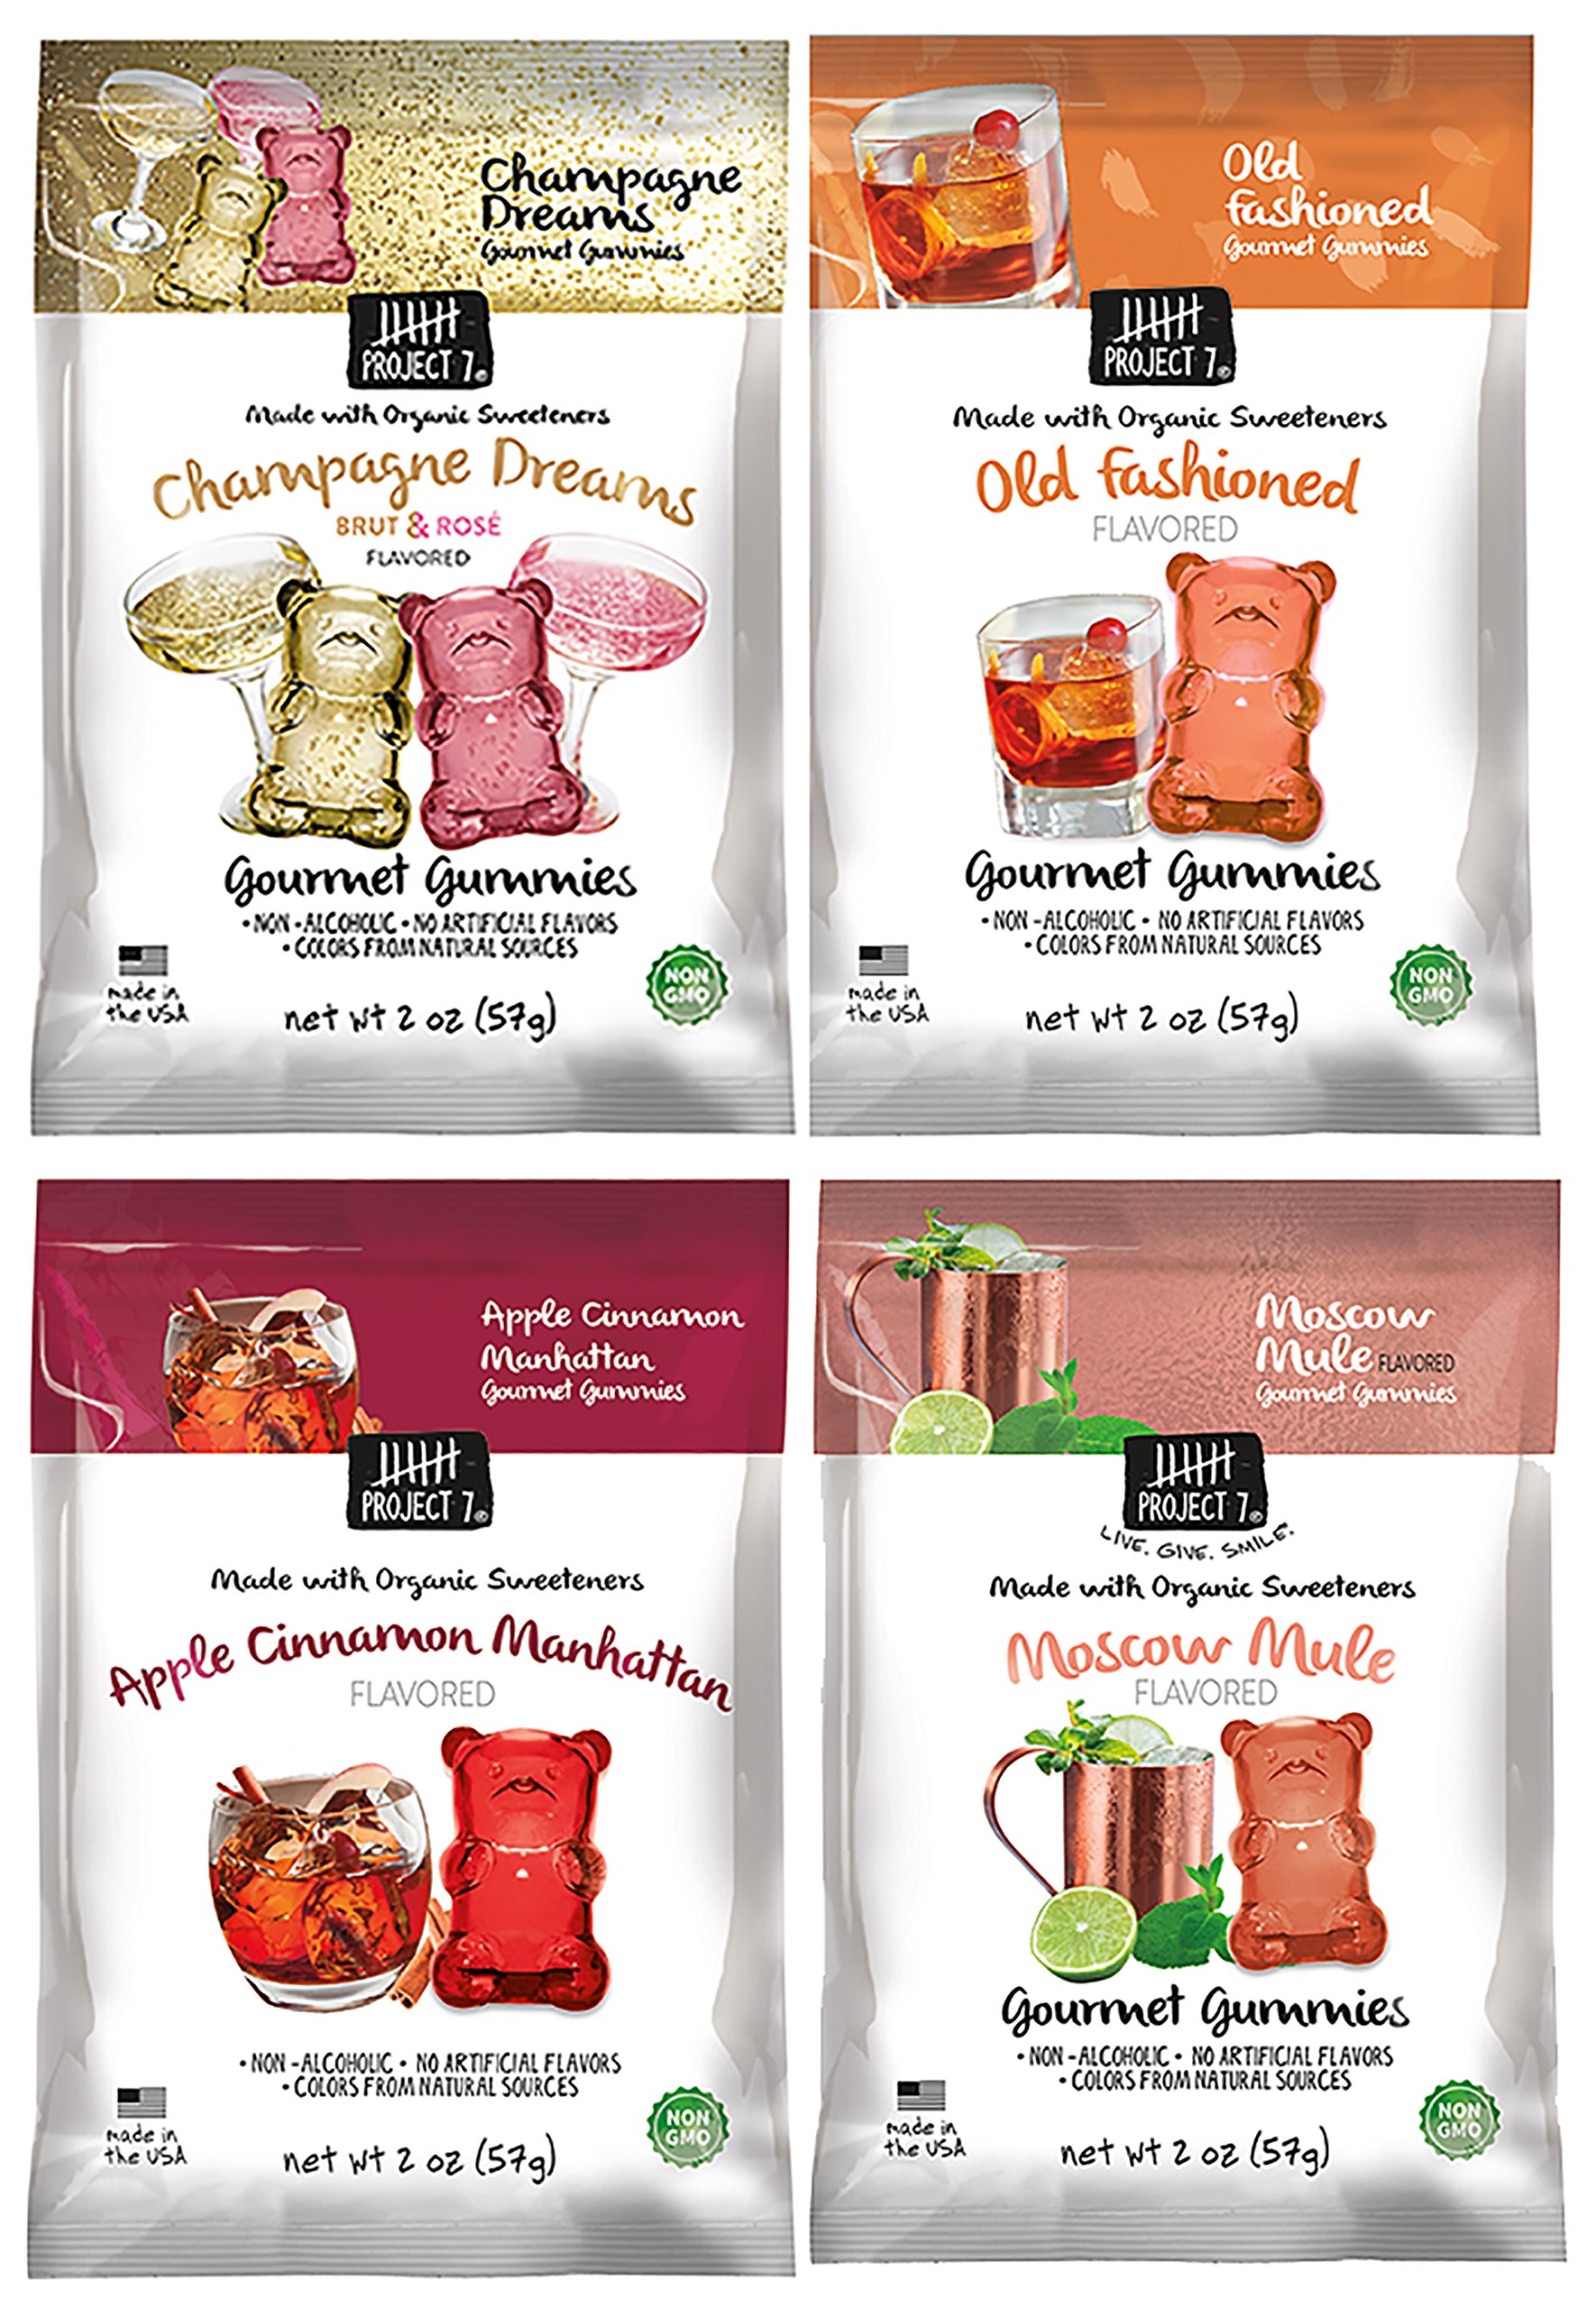 Project 7 Non-Alcoholic Gourmet Cocktail Flavored Gummies (Moscow Mule, Champagne Dreams, Apple Cinnamon Manhattan, and Old Fashioned, 2 oz) by Project 7